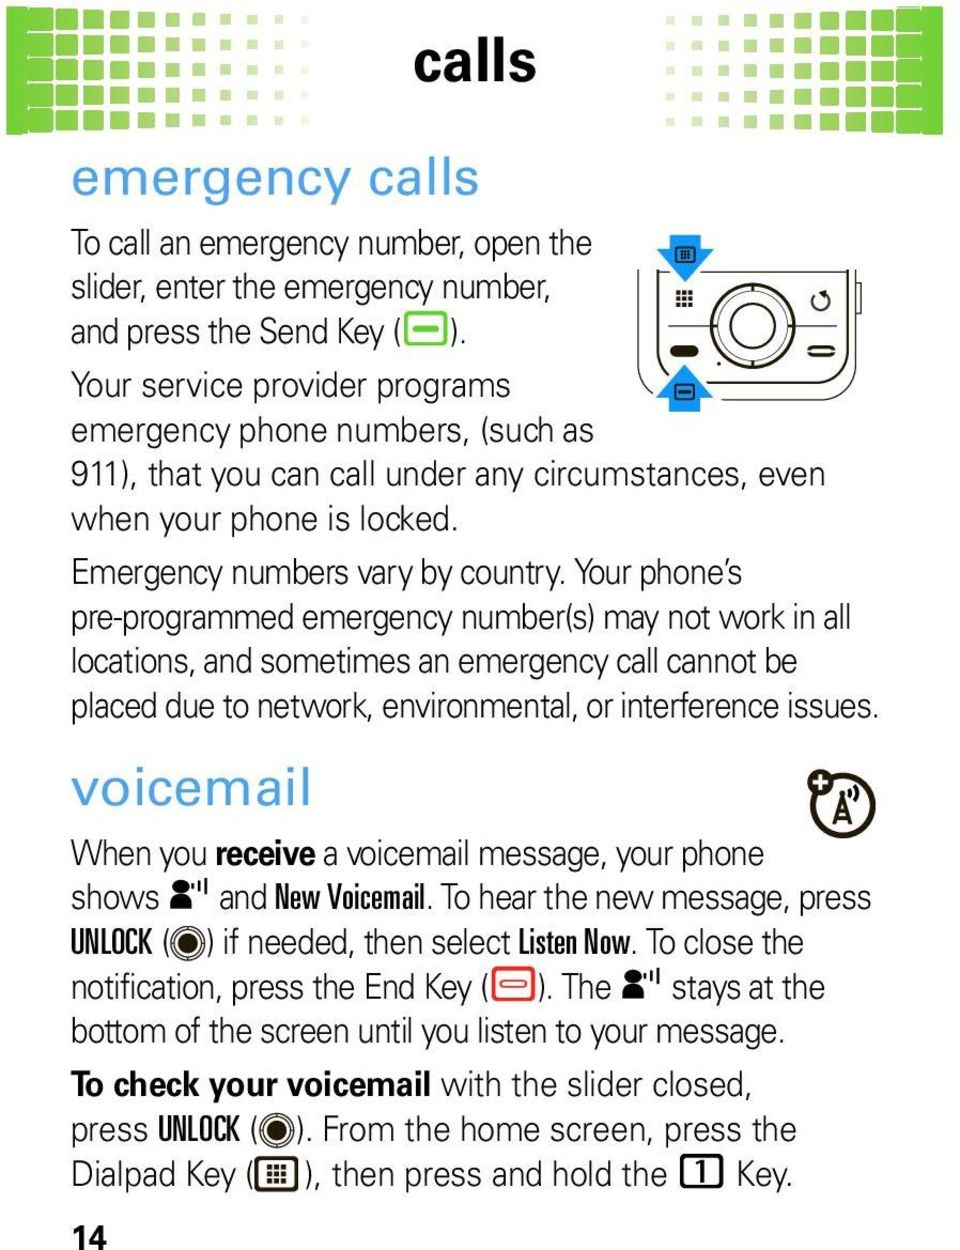 Your phone s pre-programmed emergency number(s) may not work in all locations, and sometimes an emergency call cannot be placed due to network, environmental, or interference issues.